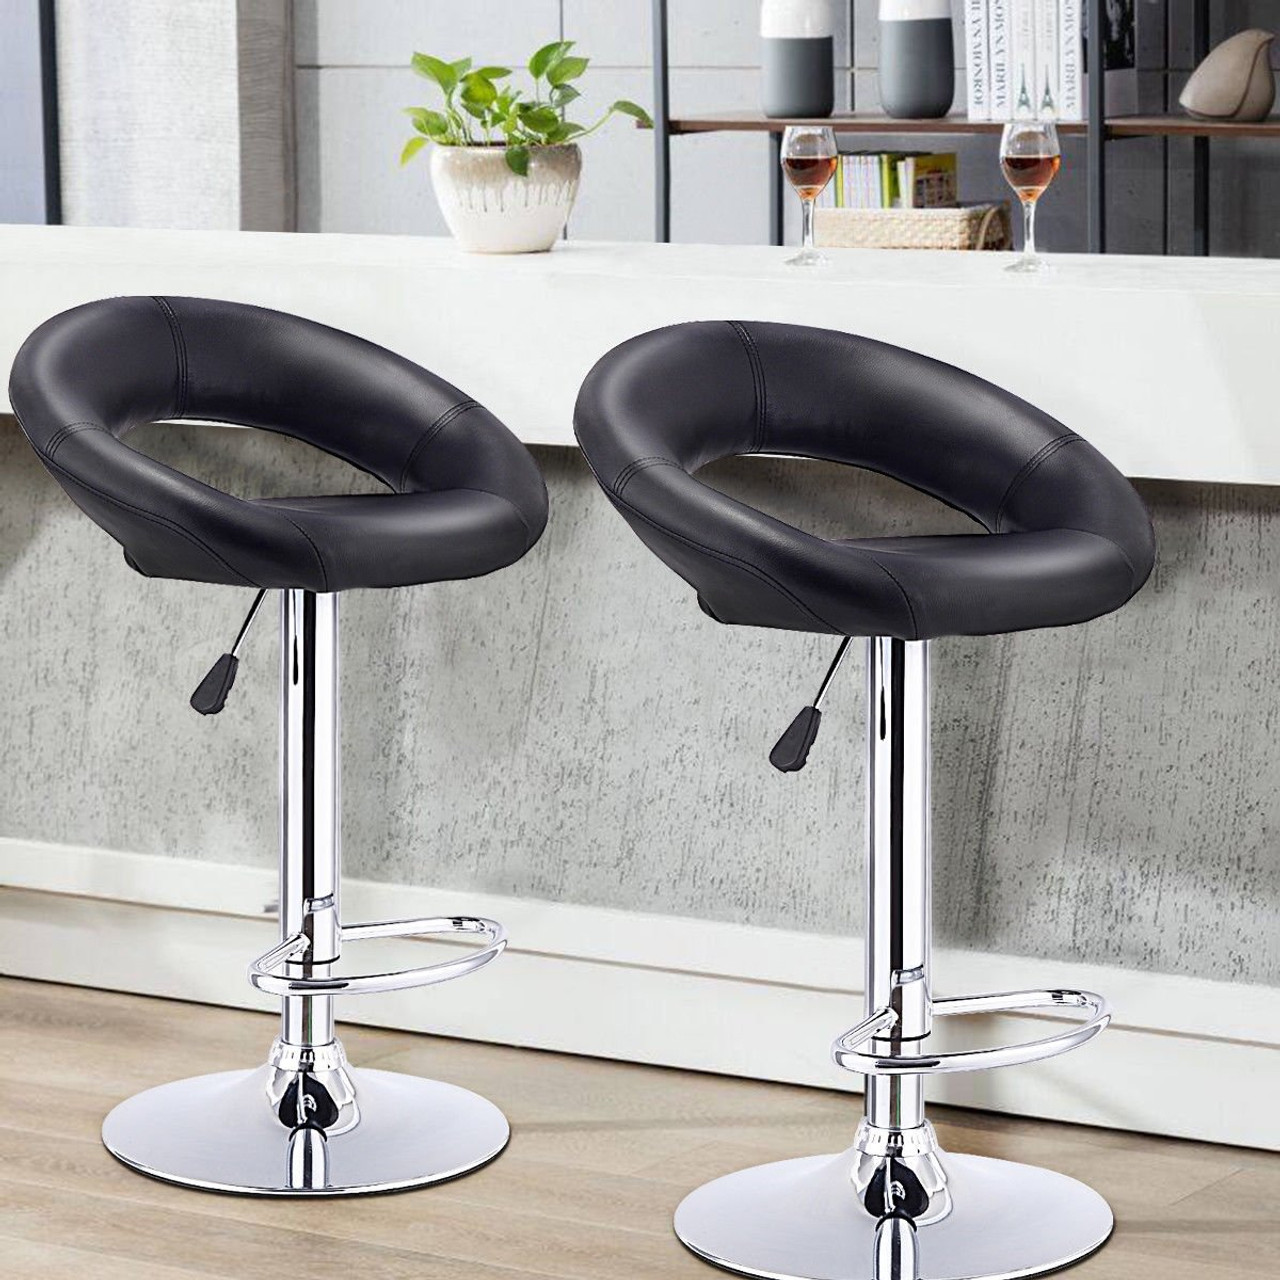 Picture of: Set Of 2 Bar Stools Adjustable Pu Leather Barstools Swivel Pub Chairs Black Hw53839bk By Cw